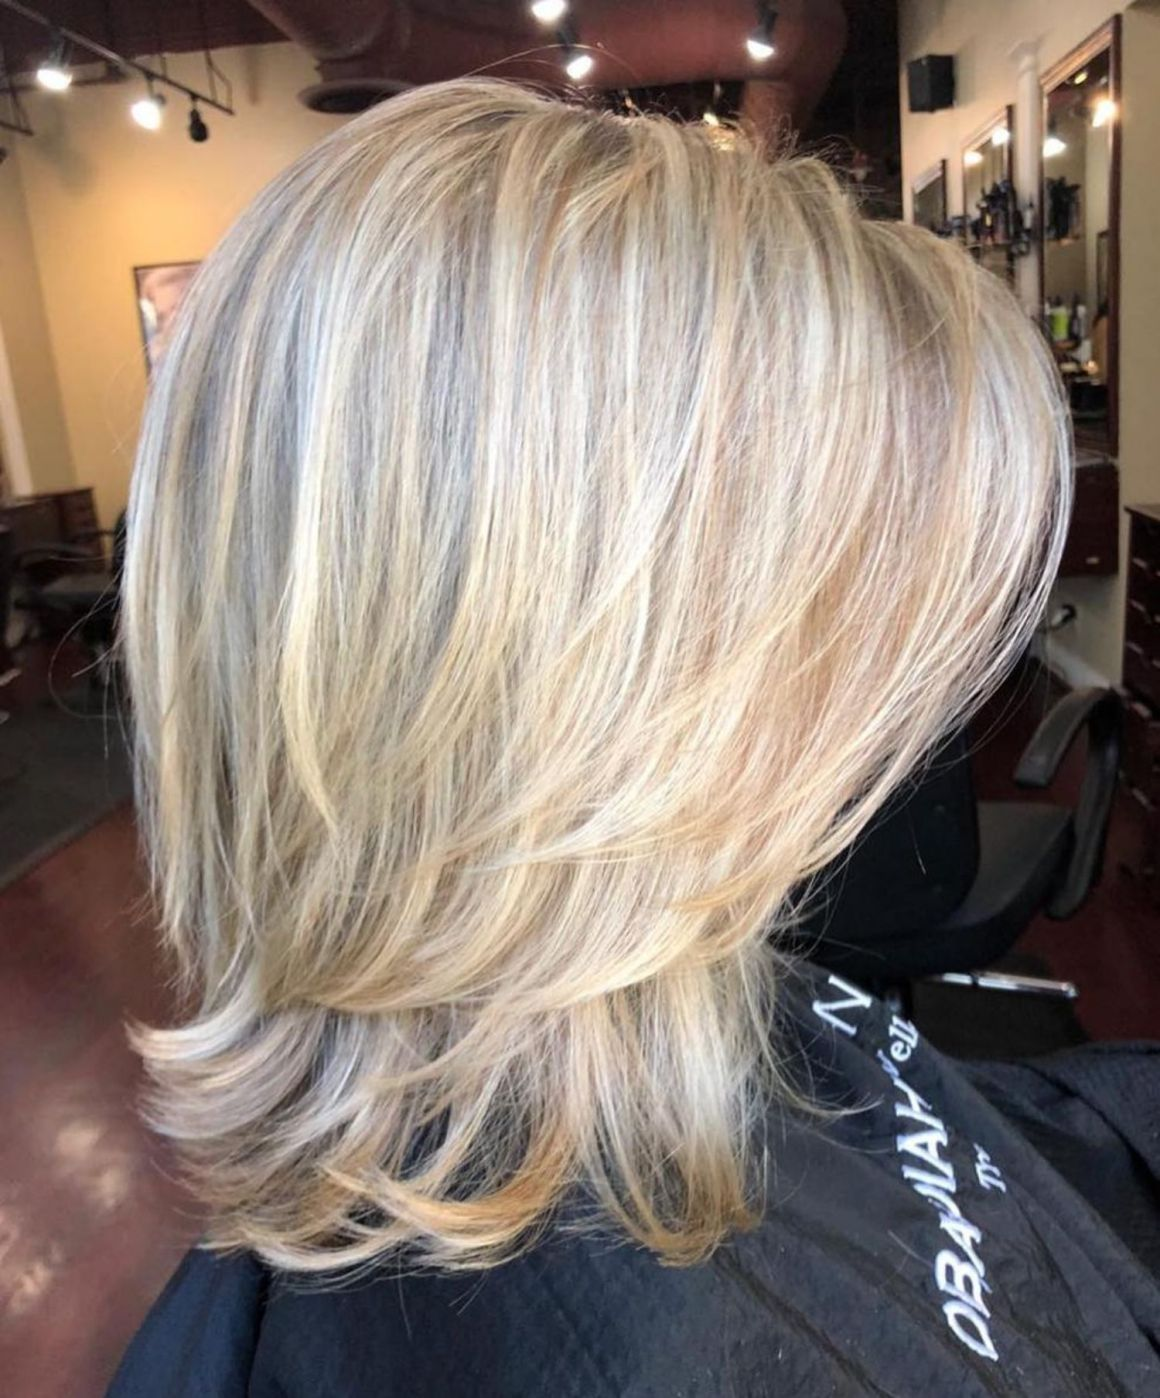 70 Brightest Medium Layered Haircuts To Light You Up In 2020 Kapsels Schouderlang Haar Kapsel Halflang Haar Laagjes